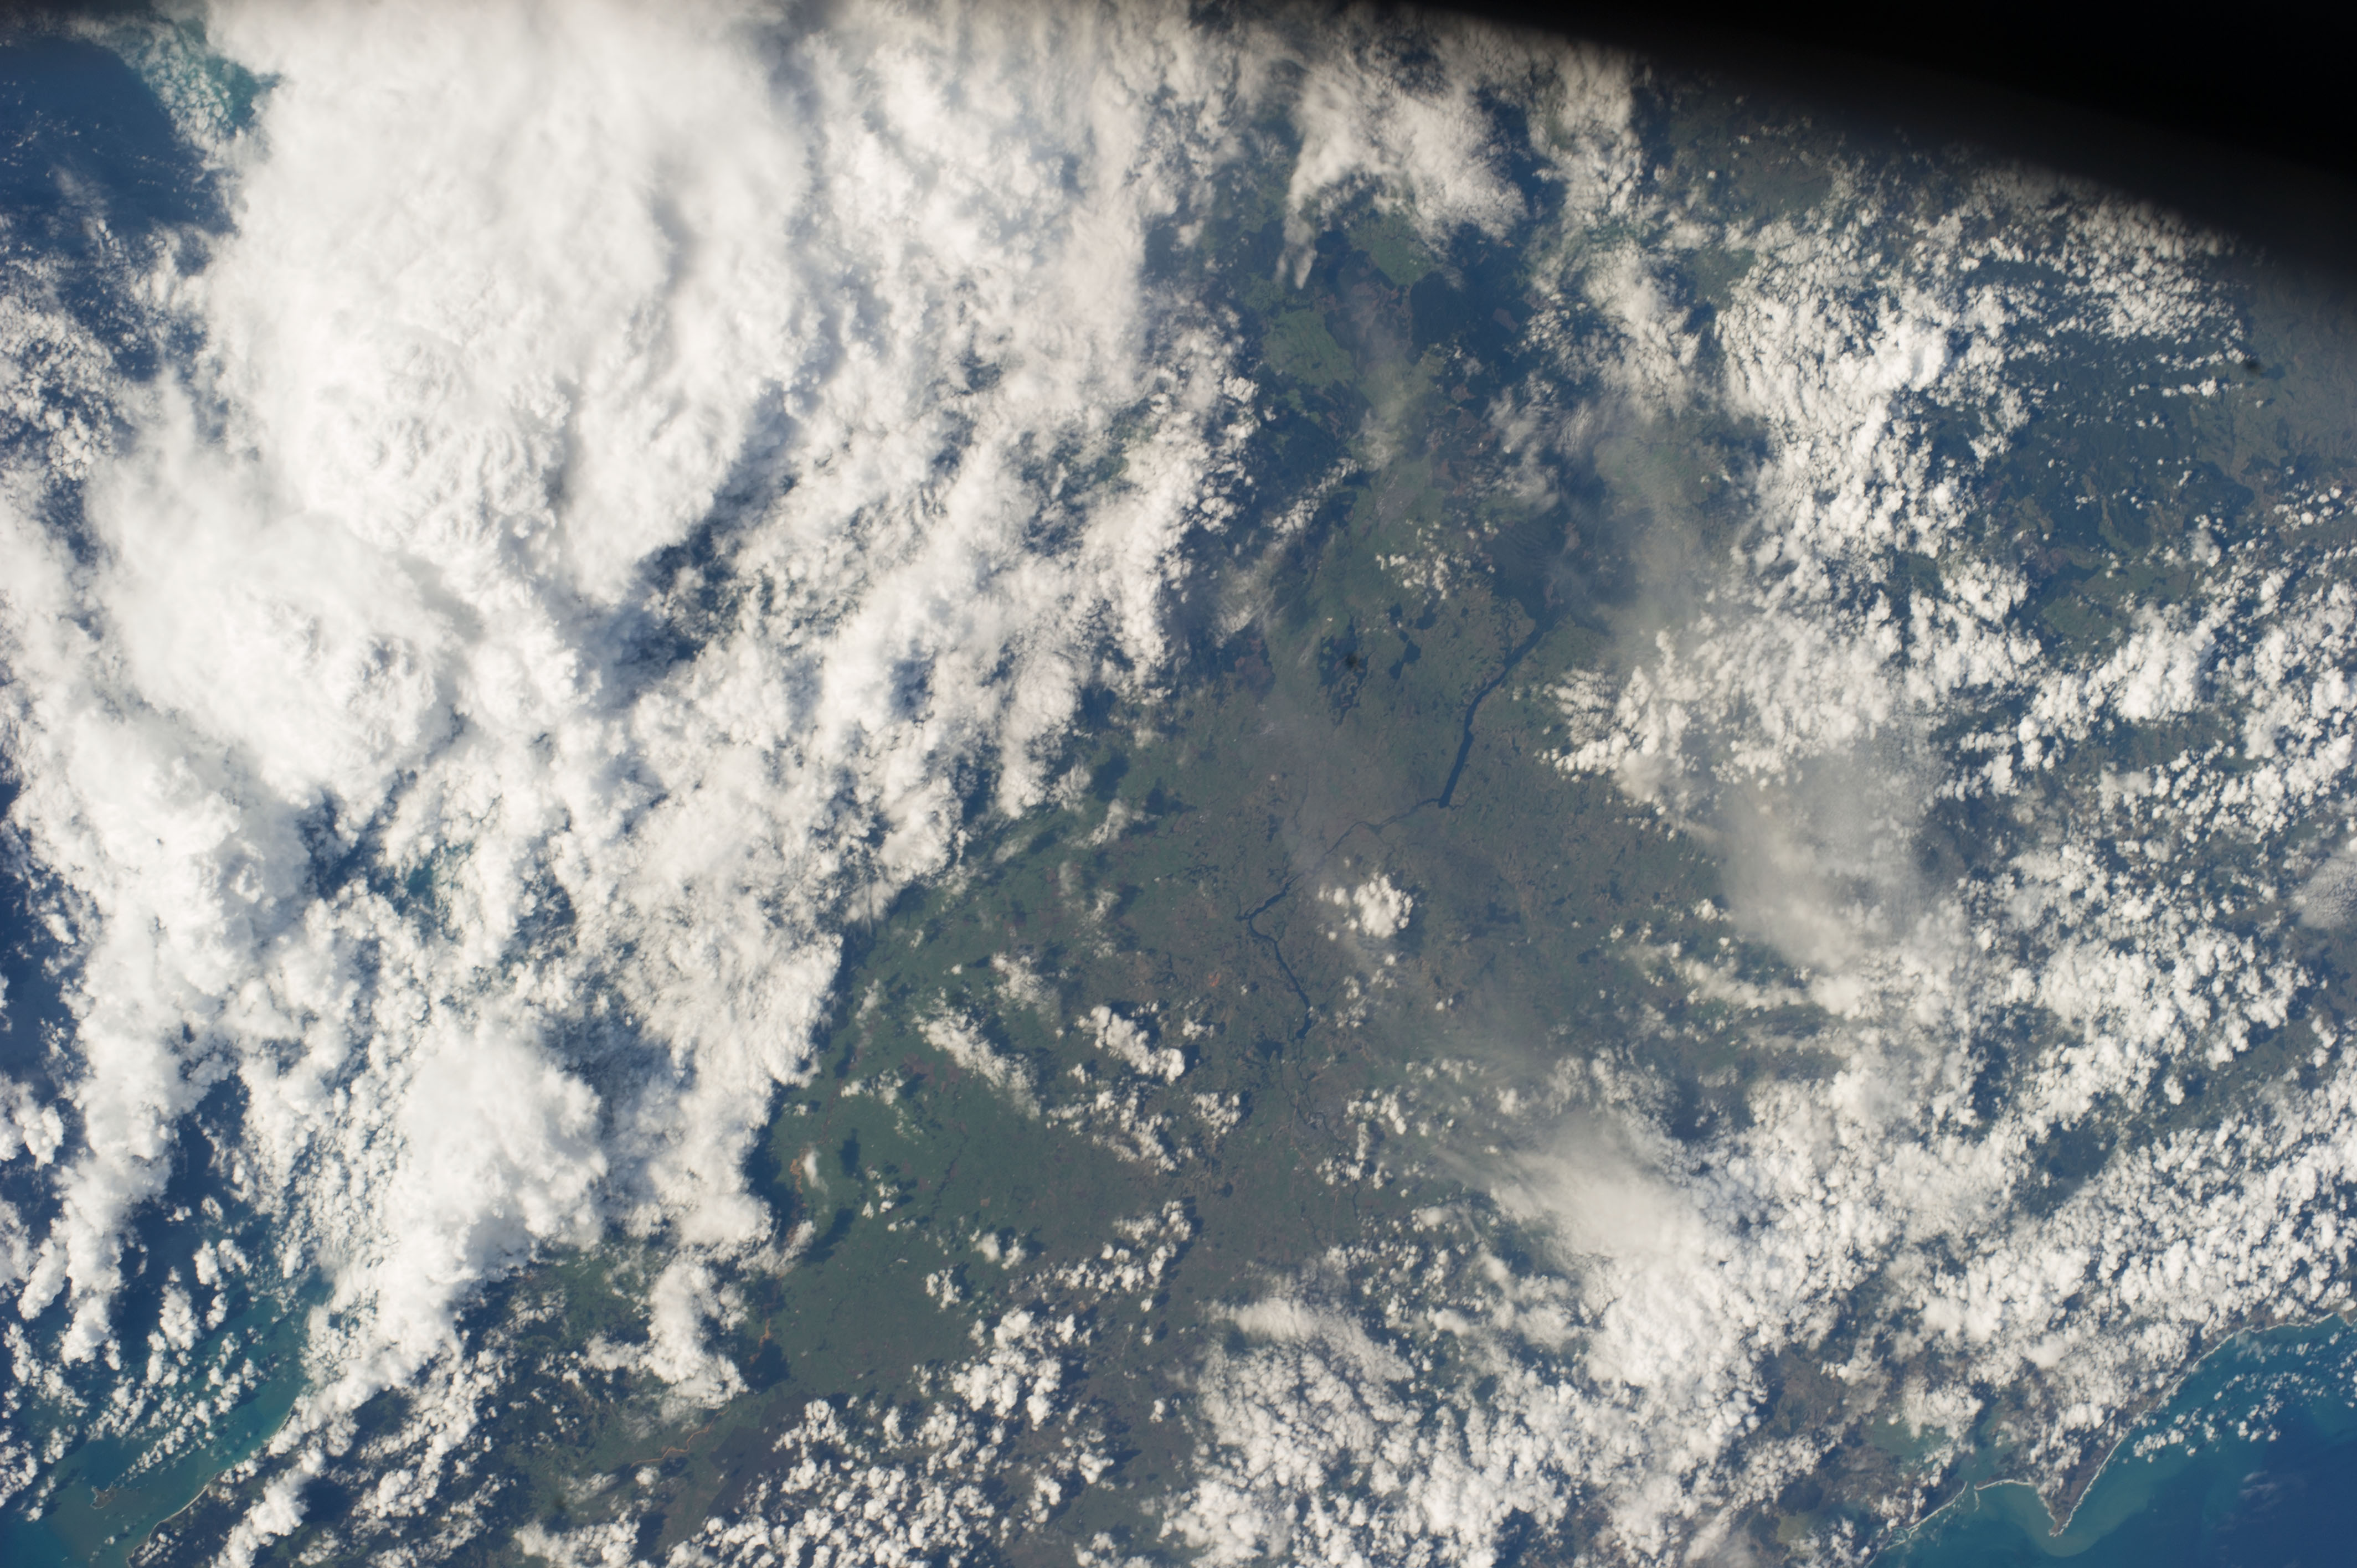 ISS039-E-012866